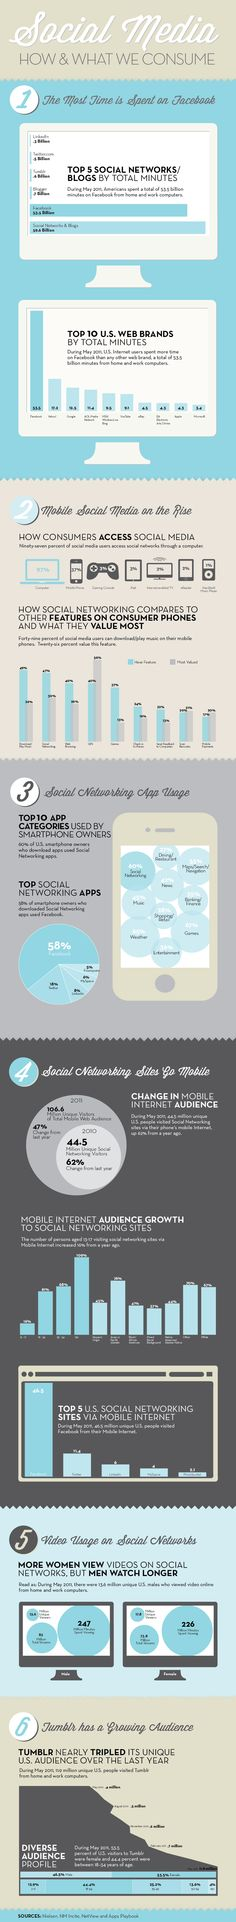 Social Media: How & What We Consume